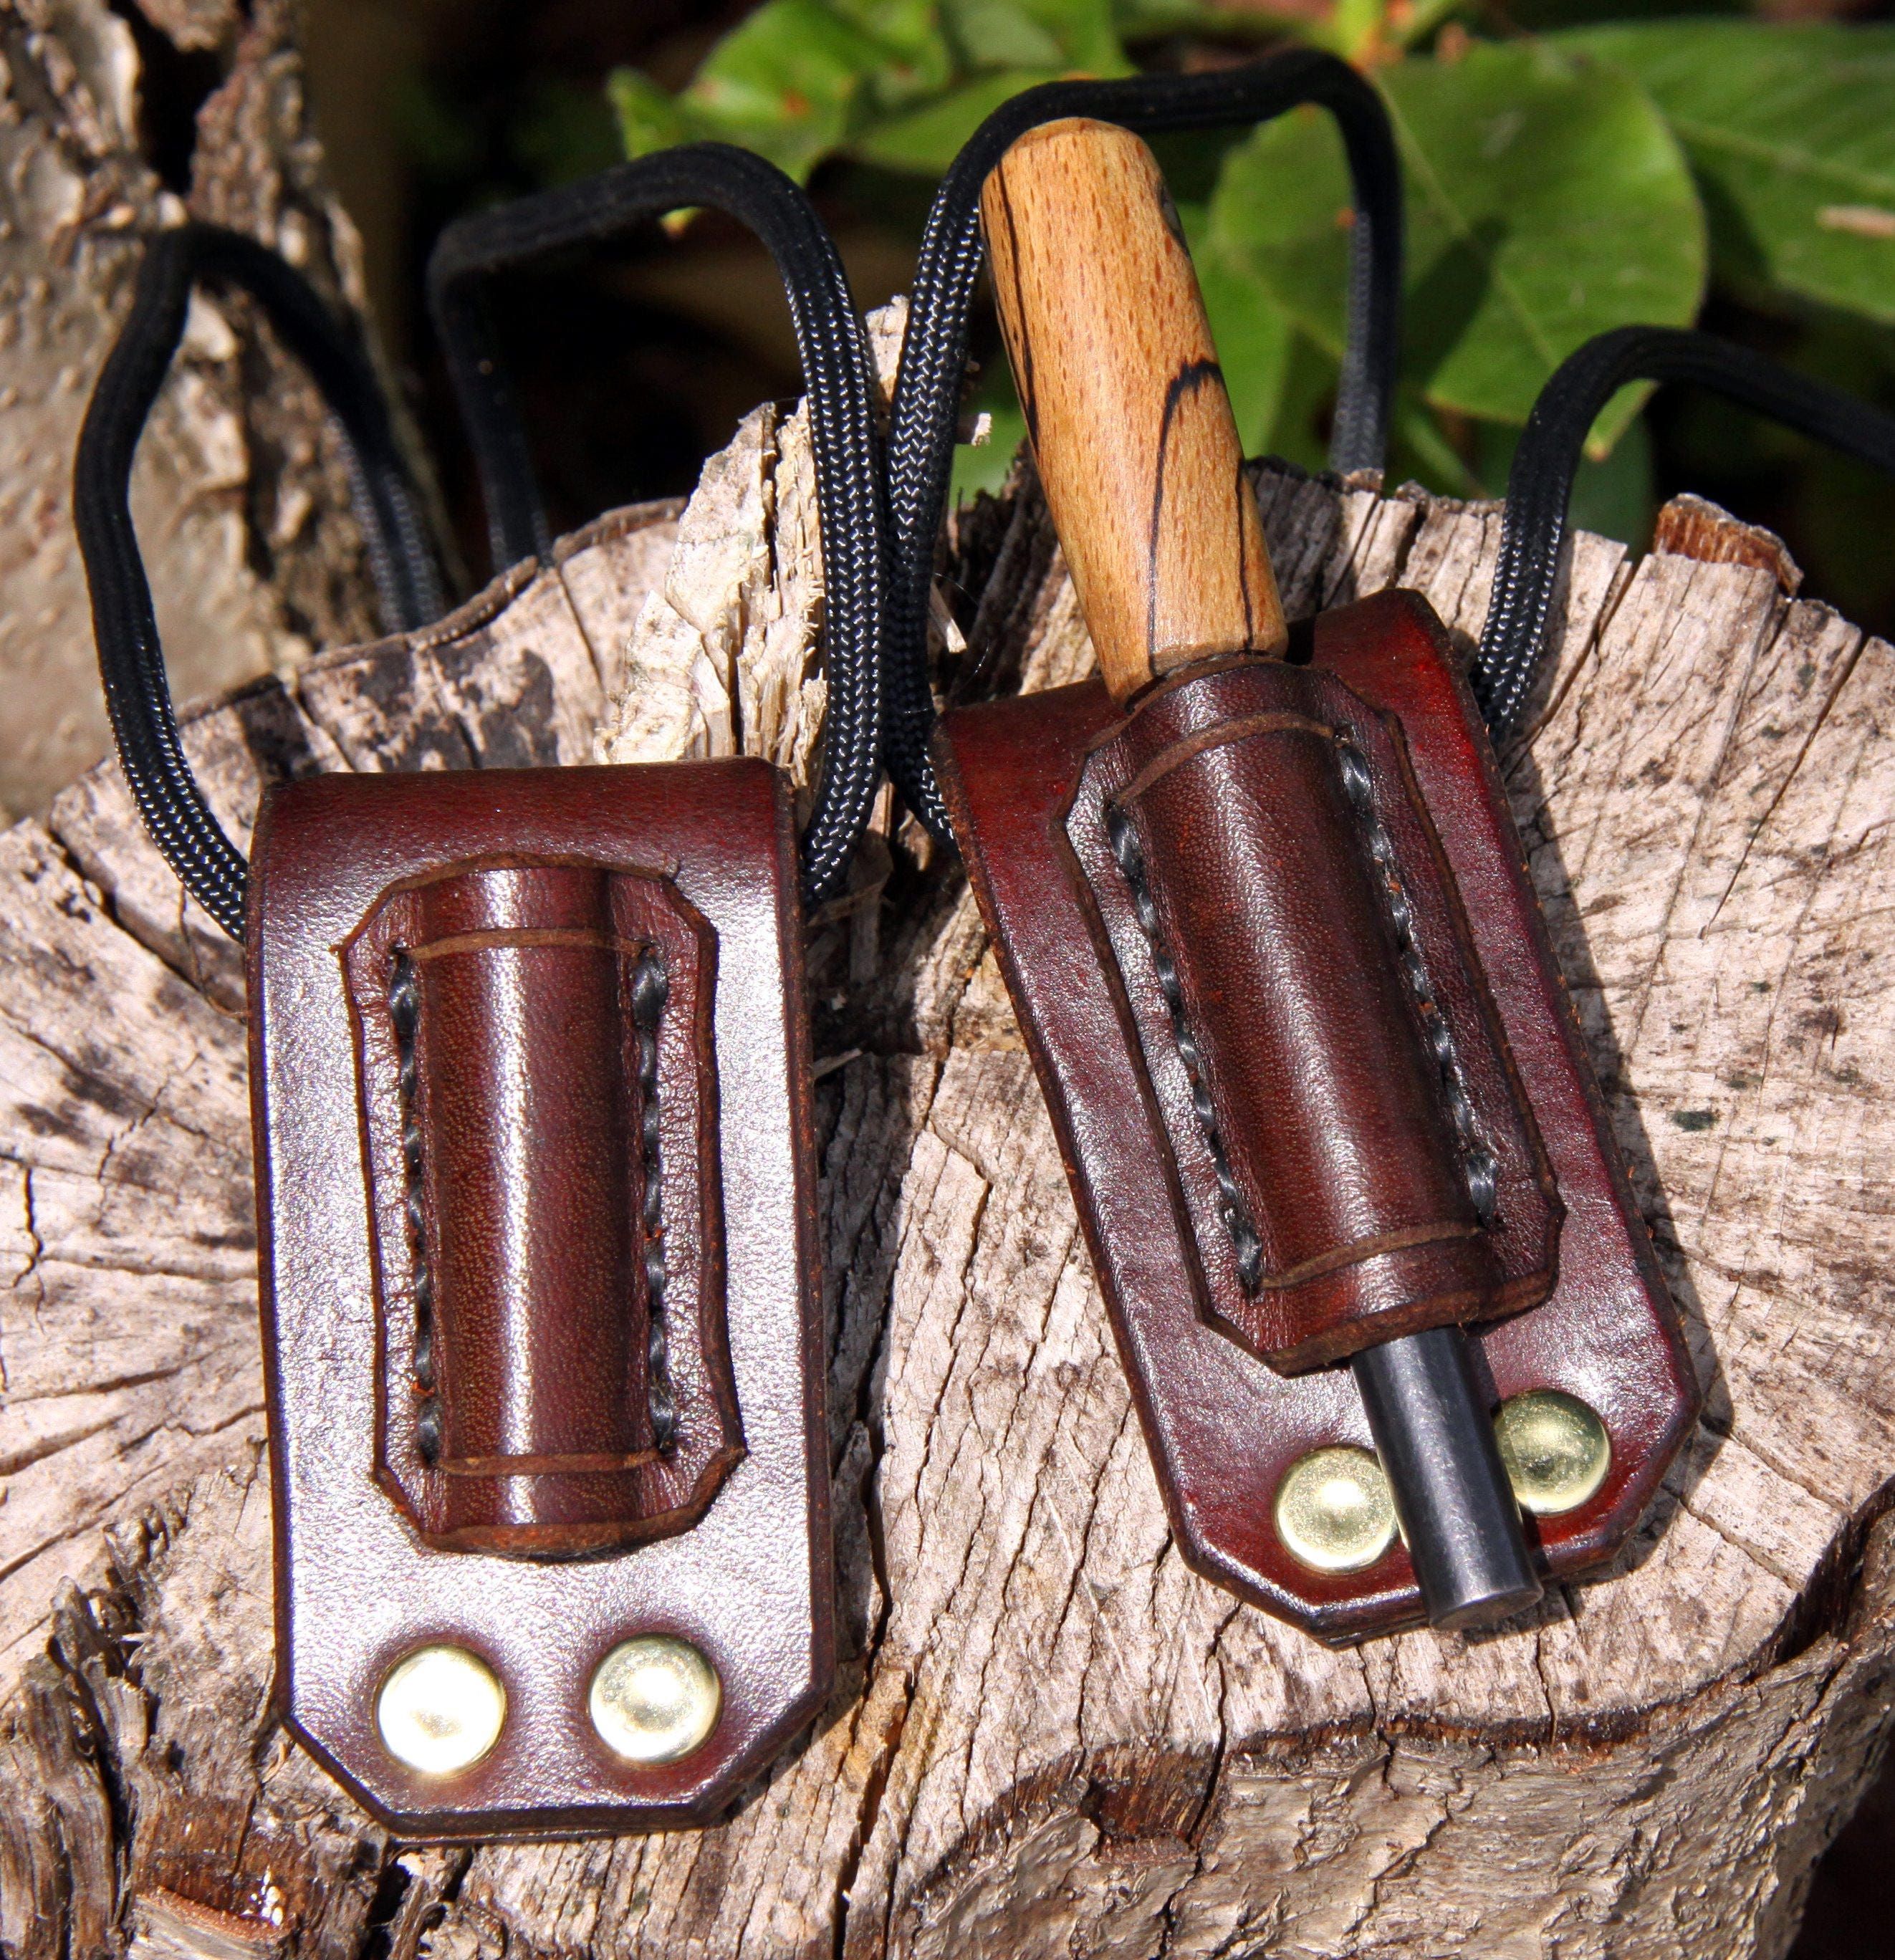 Details about  /HAND-MADE HAND-STITCHED LEATHER FIRESTEEL NECK /& BELT CARRY FERRO ROD HOLDER